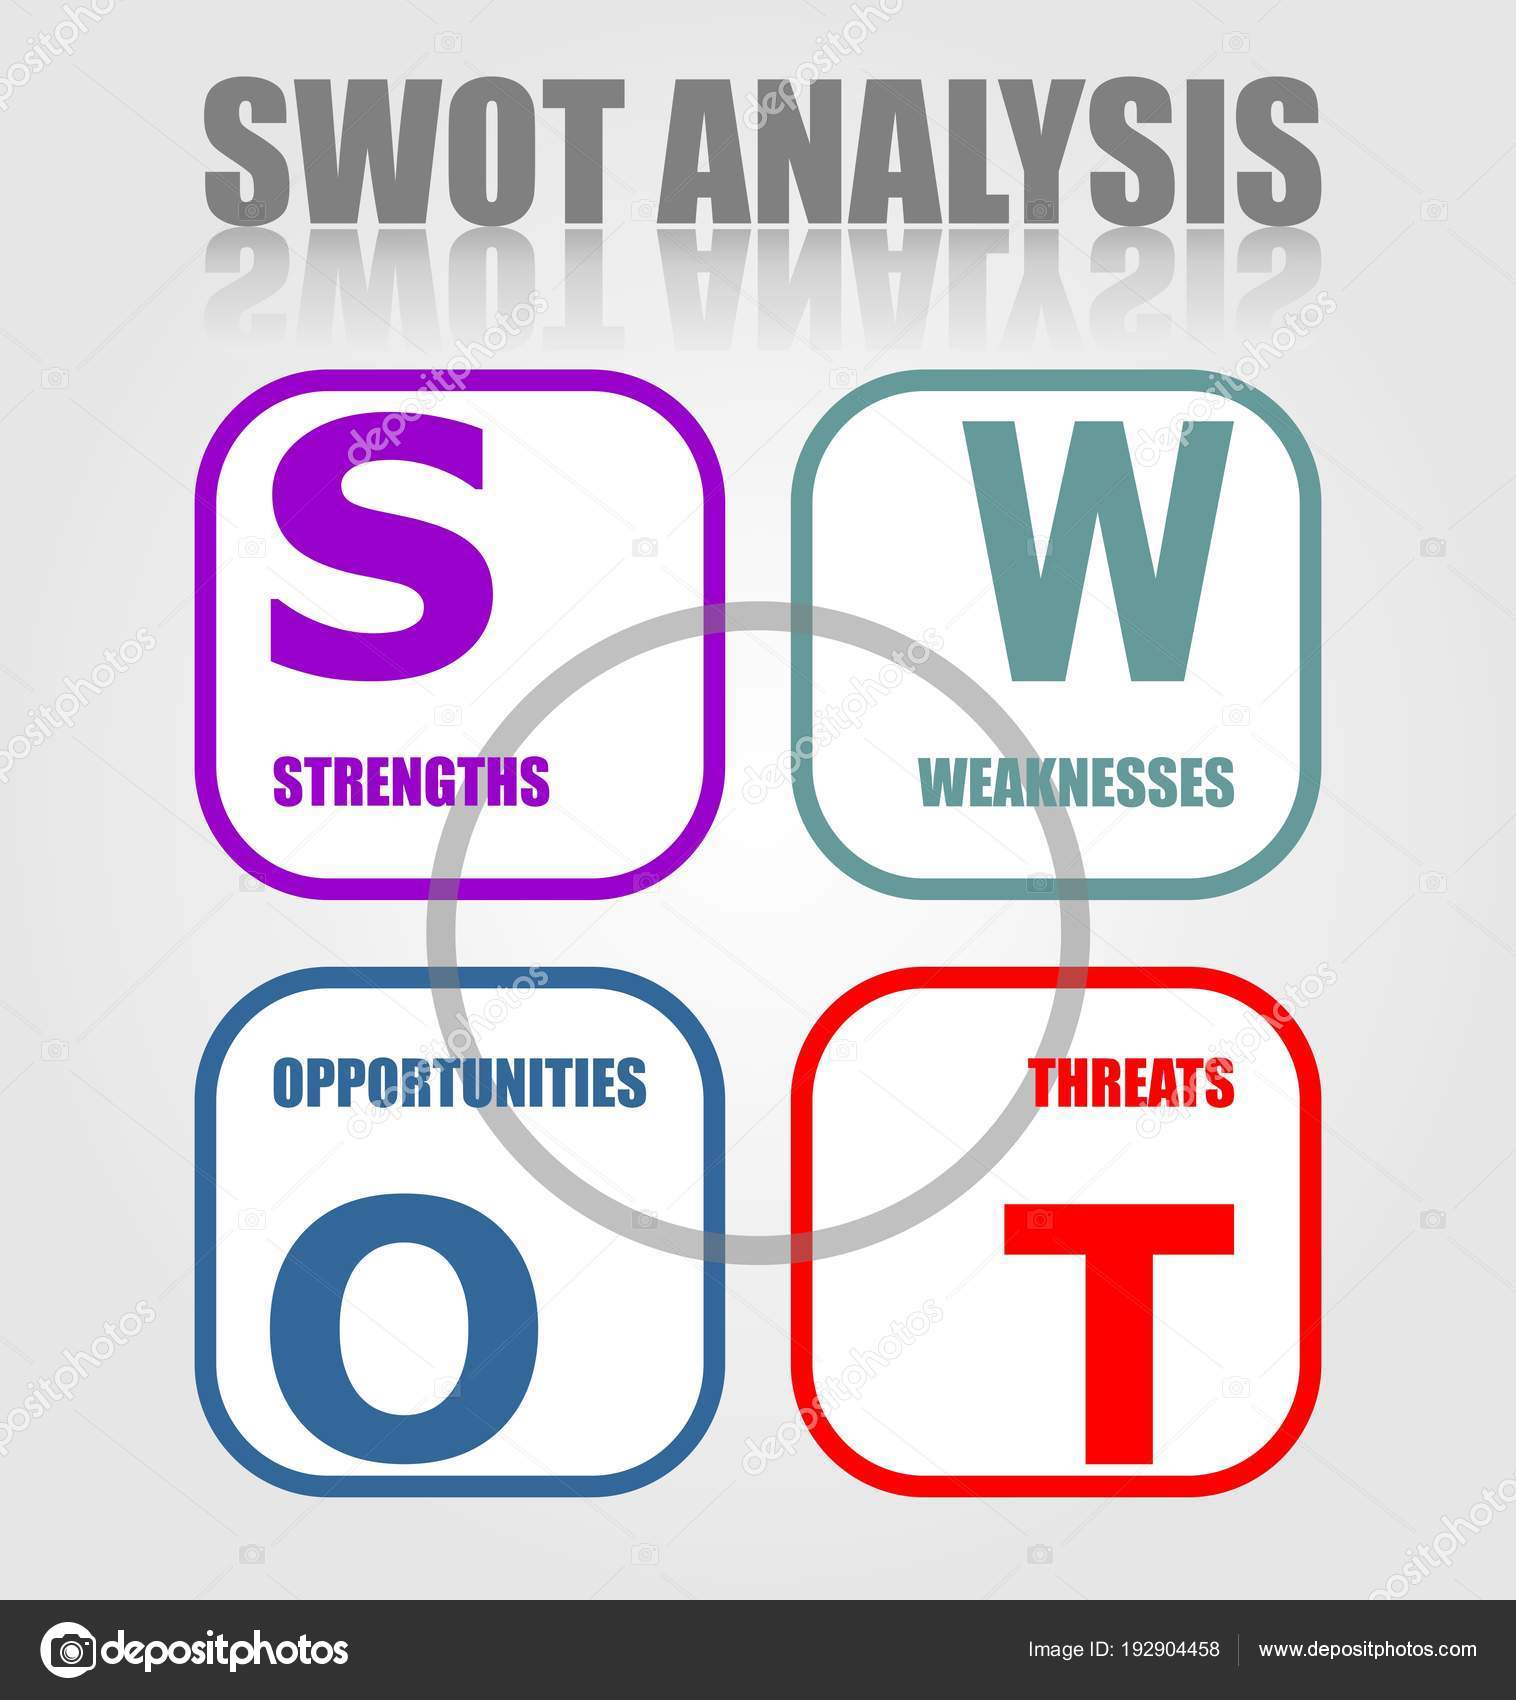 Swot analysis strategy diagram in minimalist design strenghts swot analysis strategy diagram in minimalist design strenghts weaknesses opportunities threats ccuart Choice Image